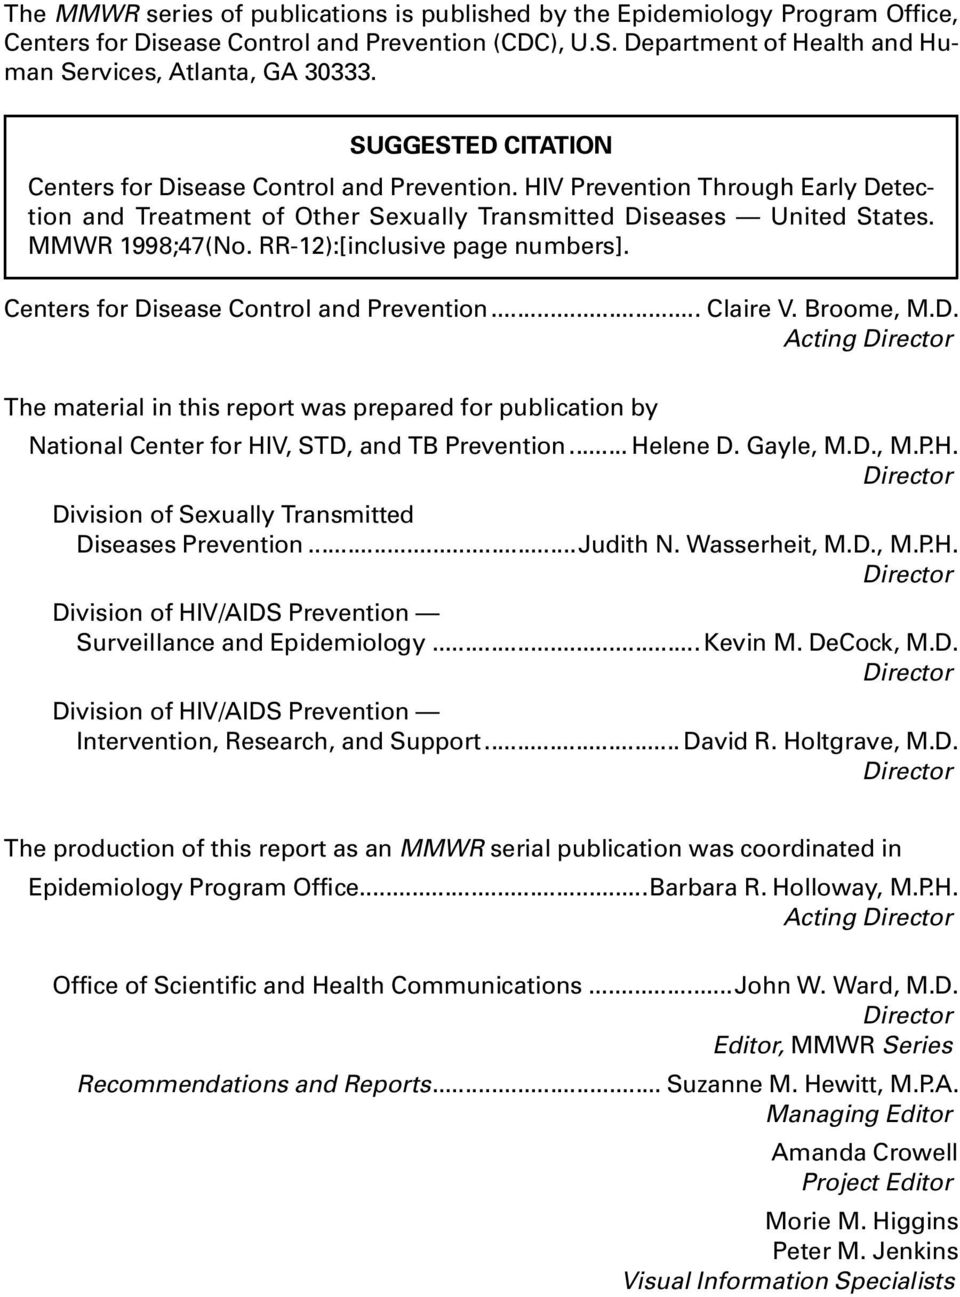 RR-12):[inclusive page numbers]. Centers for Disease Control and Prevention... Claire V. Broome, M.D. Acting Director The material in this report was prepared for publication by National Center for HIV, STD, and TB Prevention.